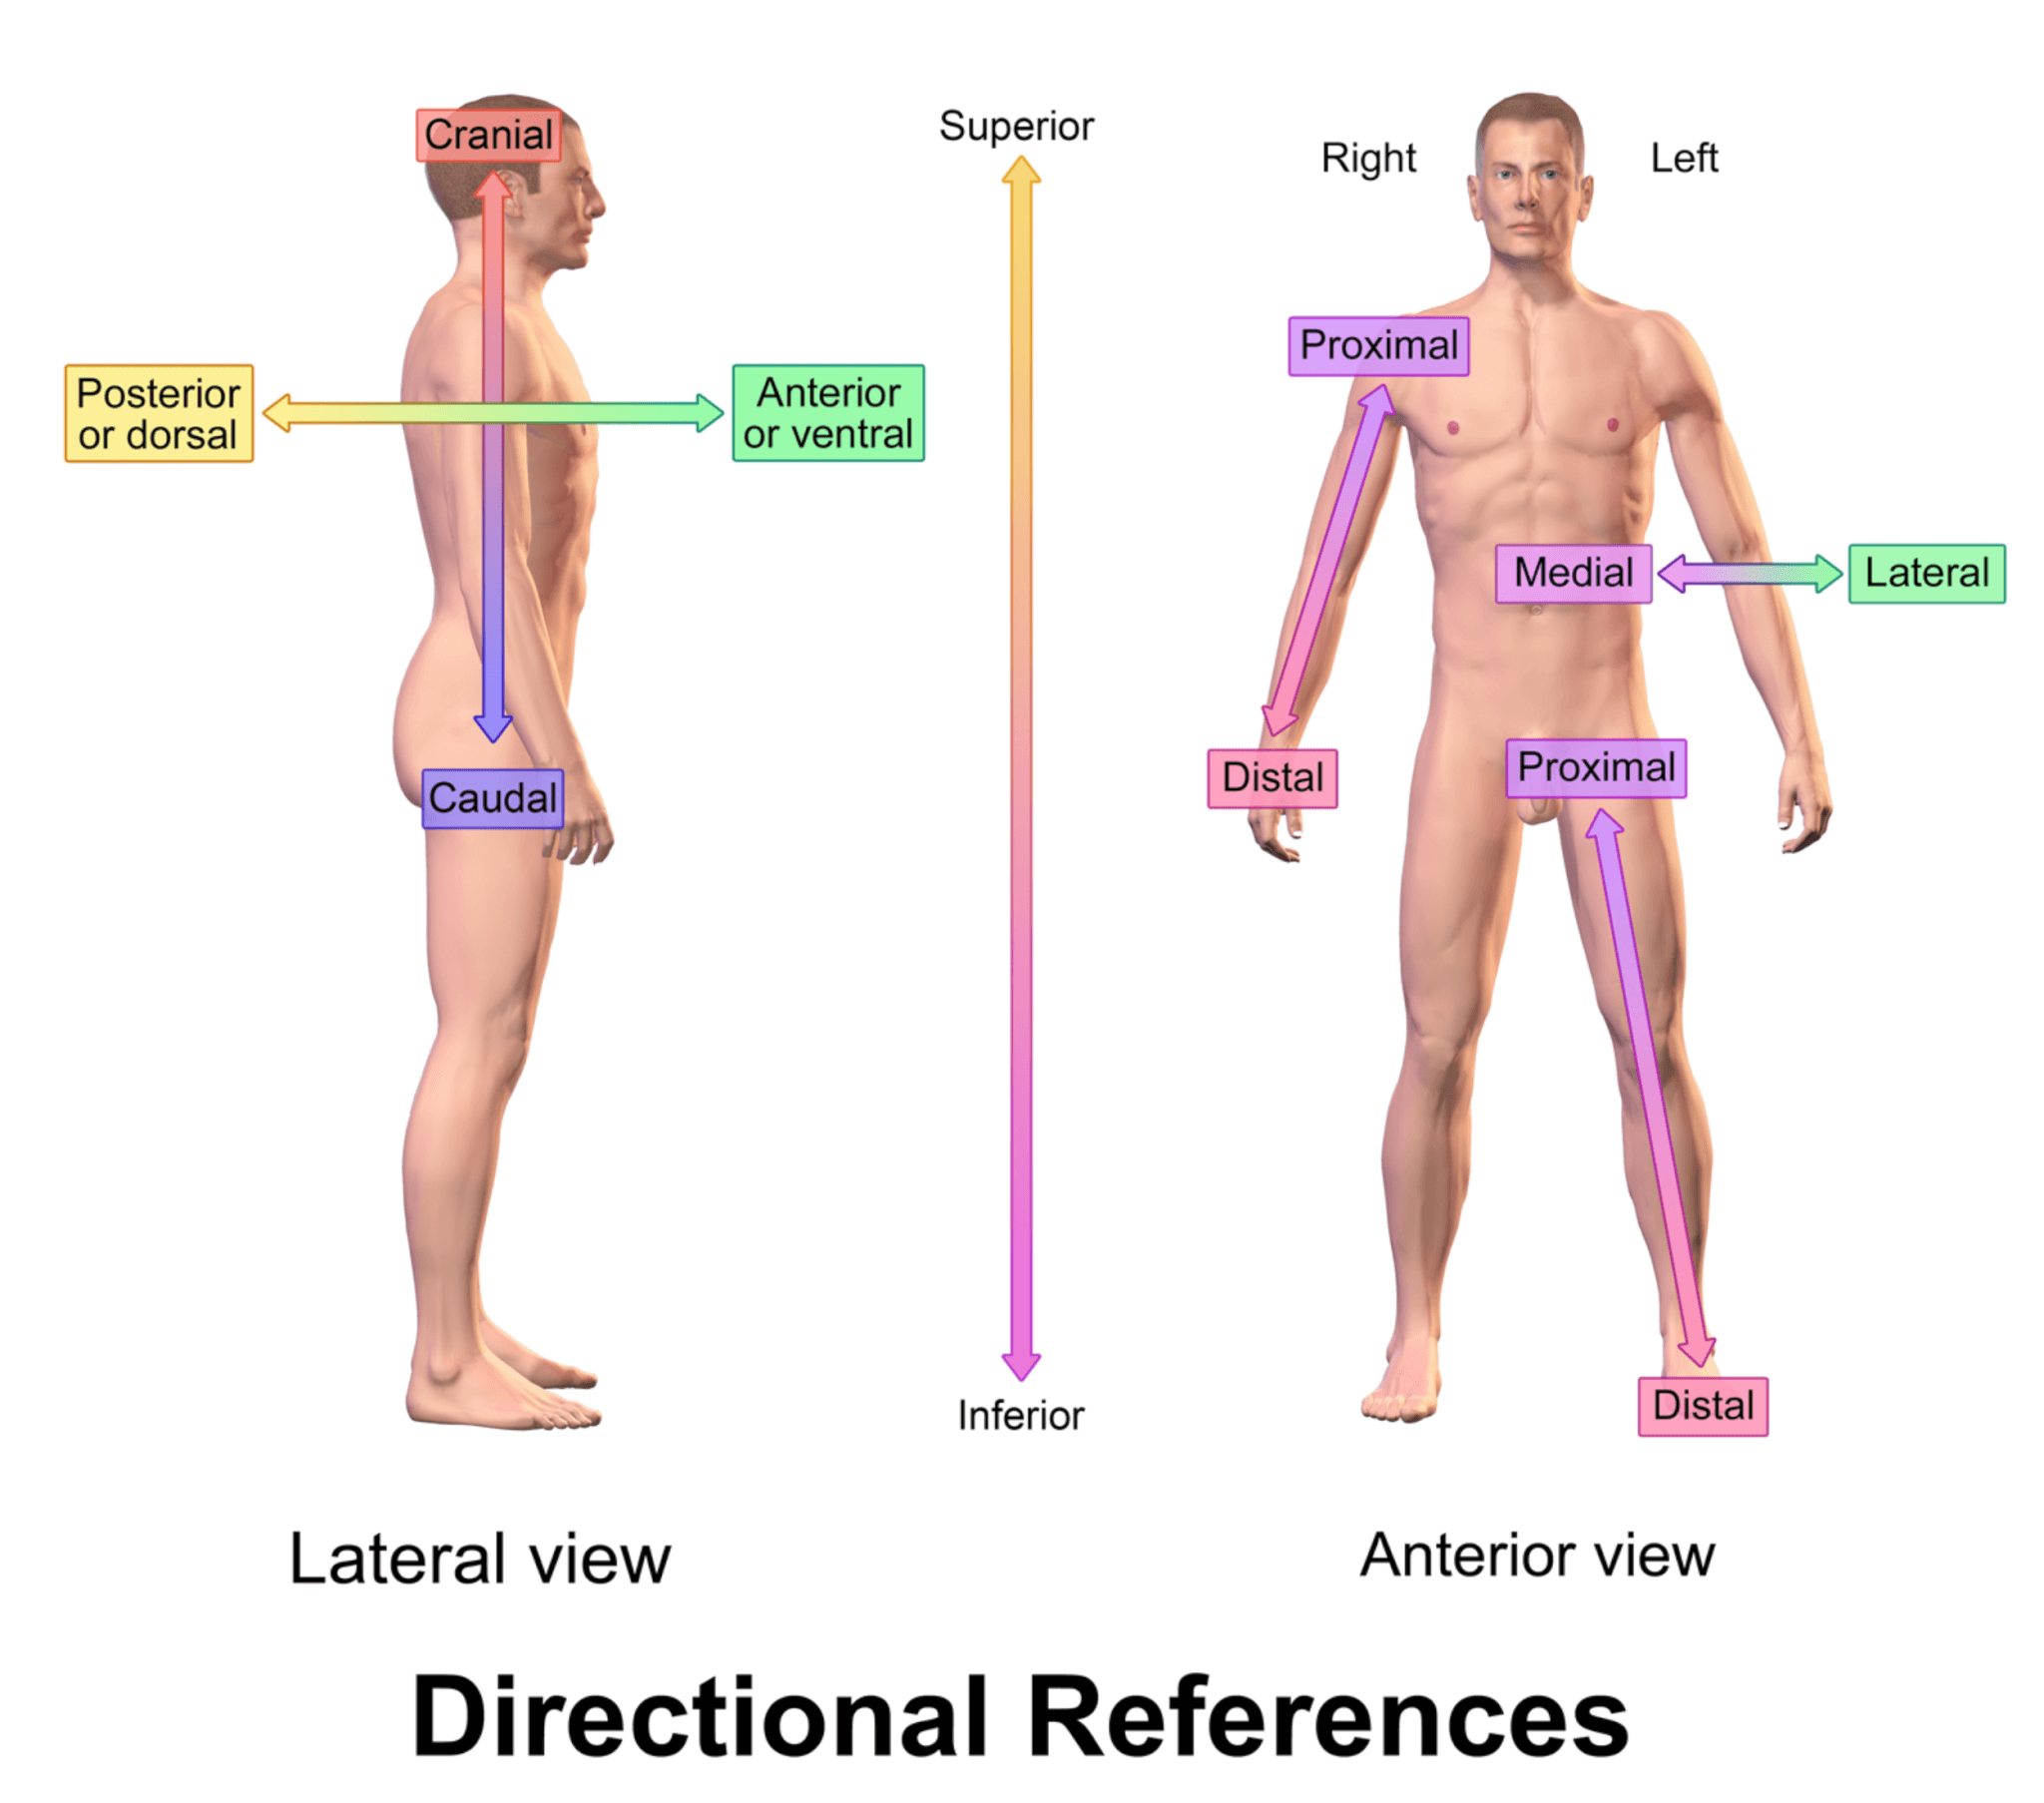 Anatomical Directional References